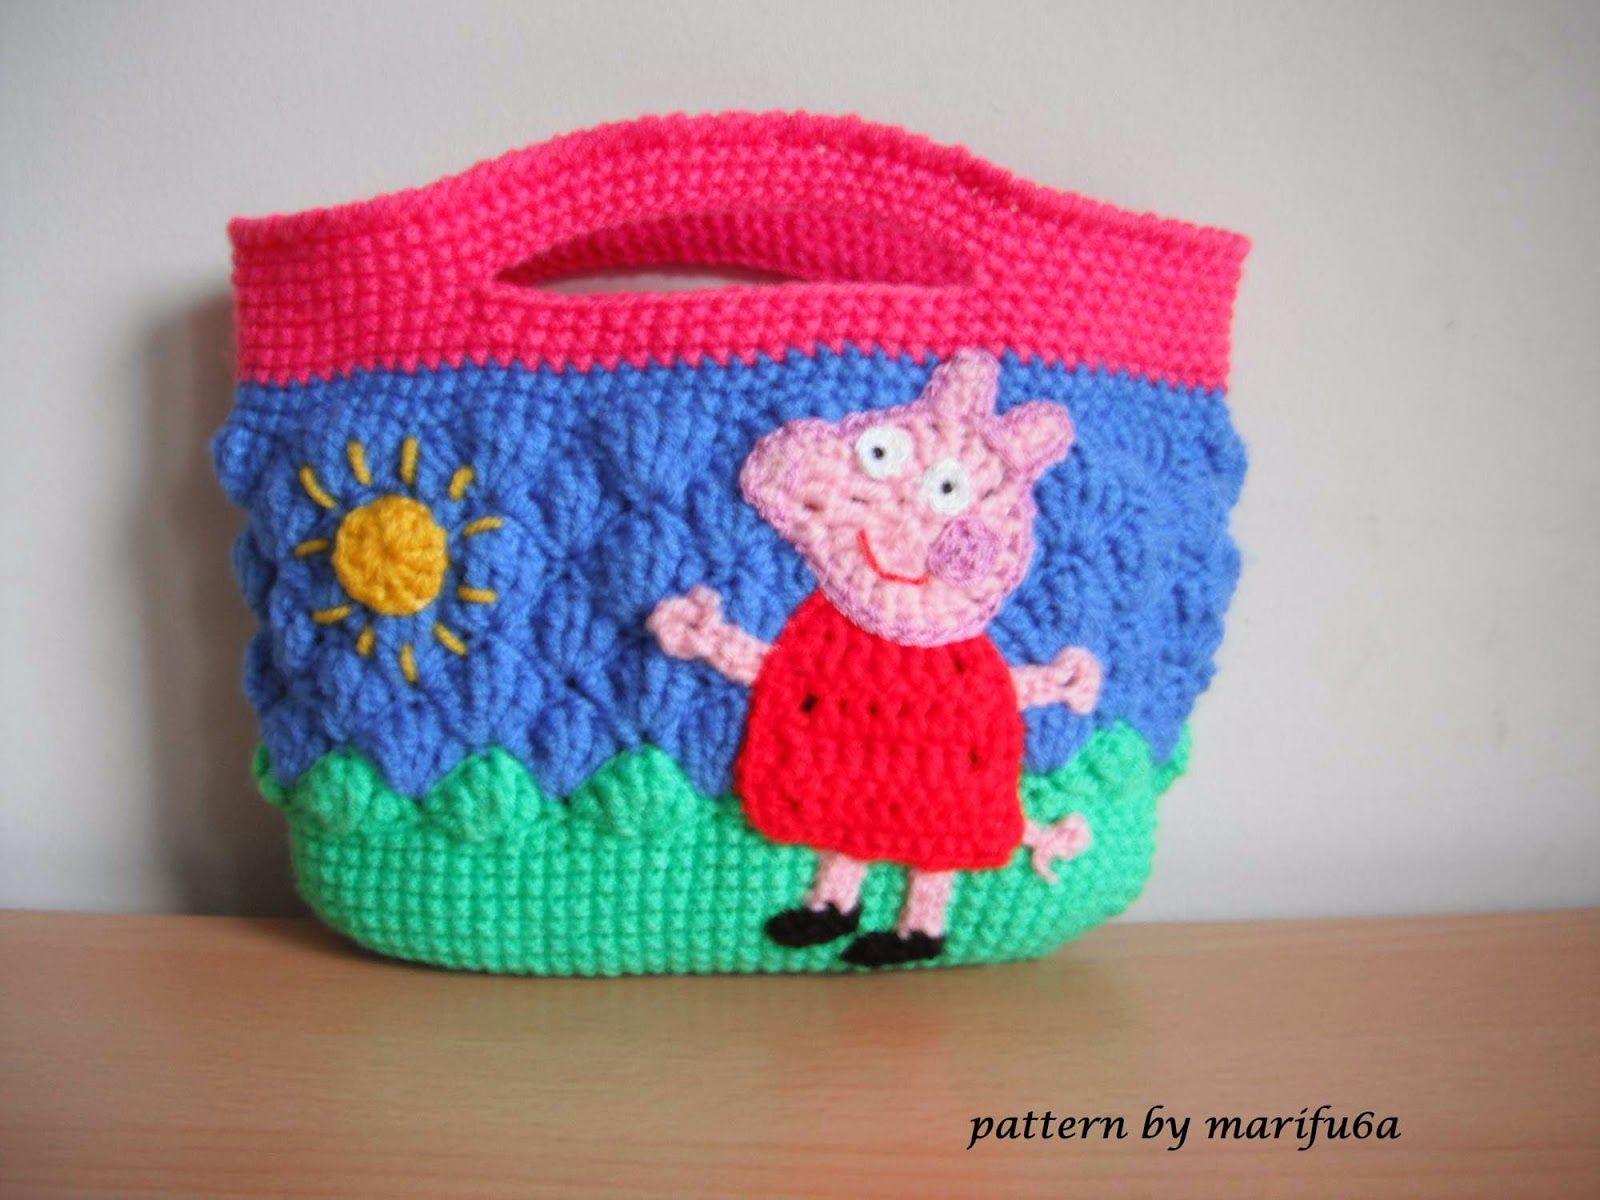 Free crochet patterns and video tutorials: how to crochet peppa pig ...